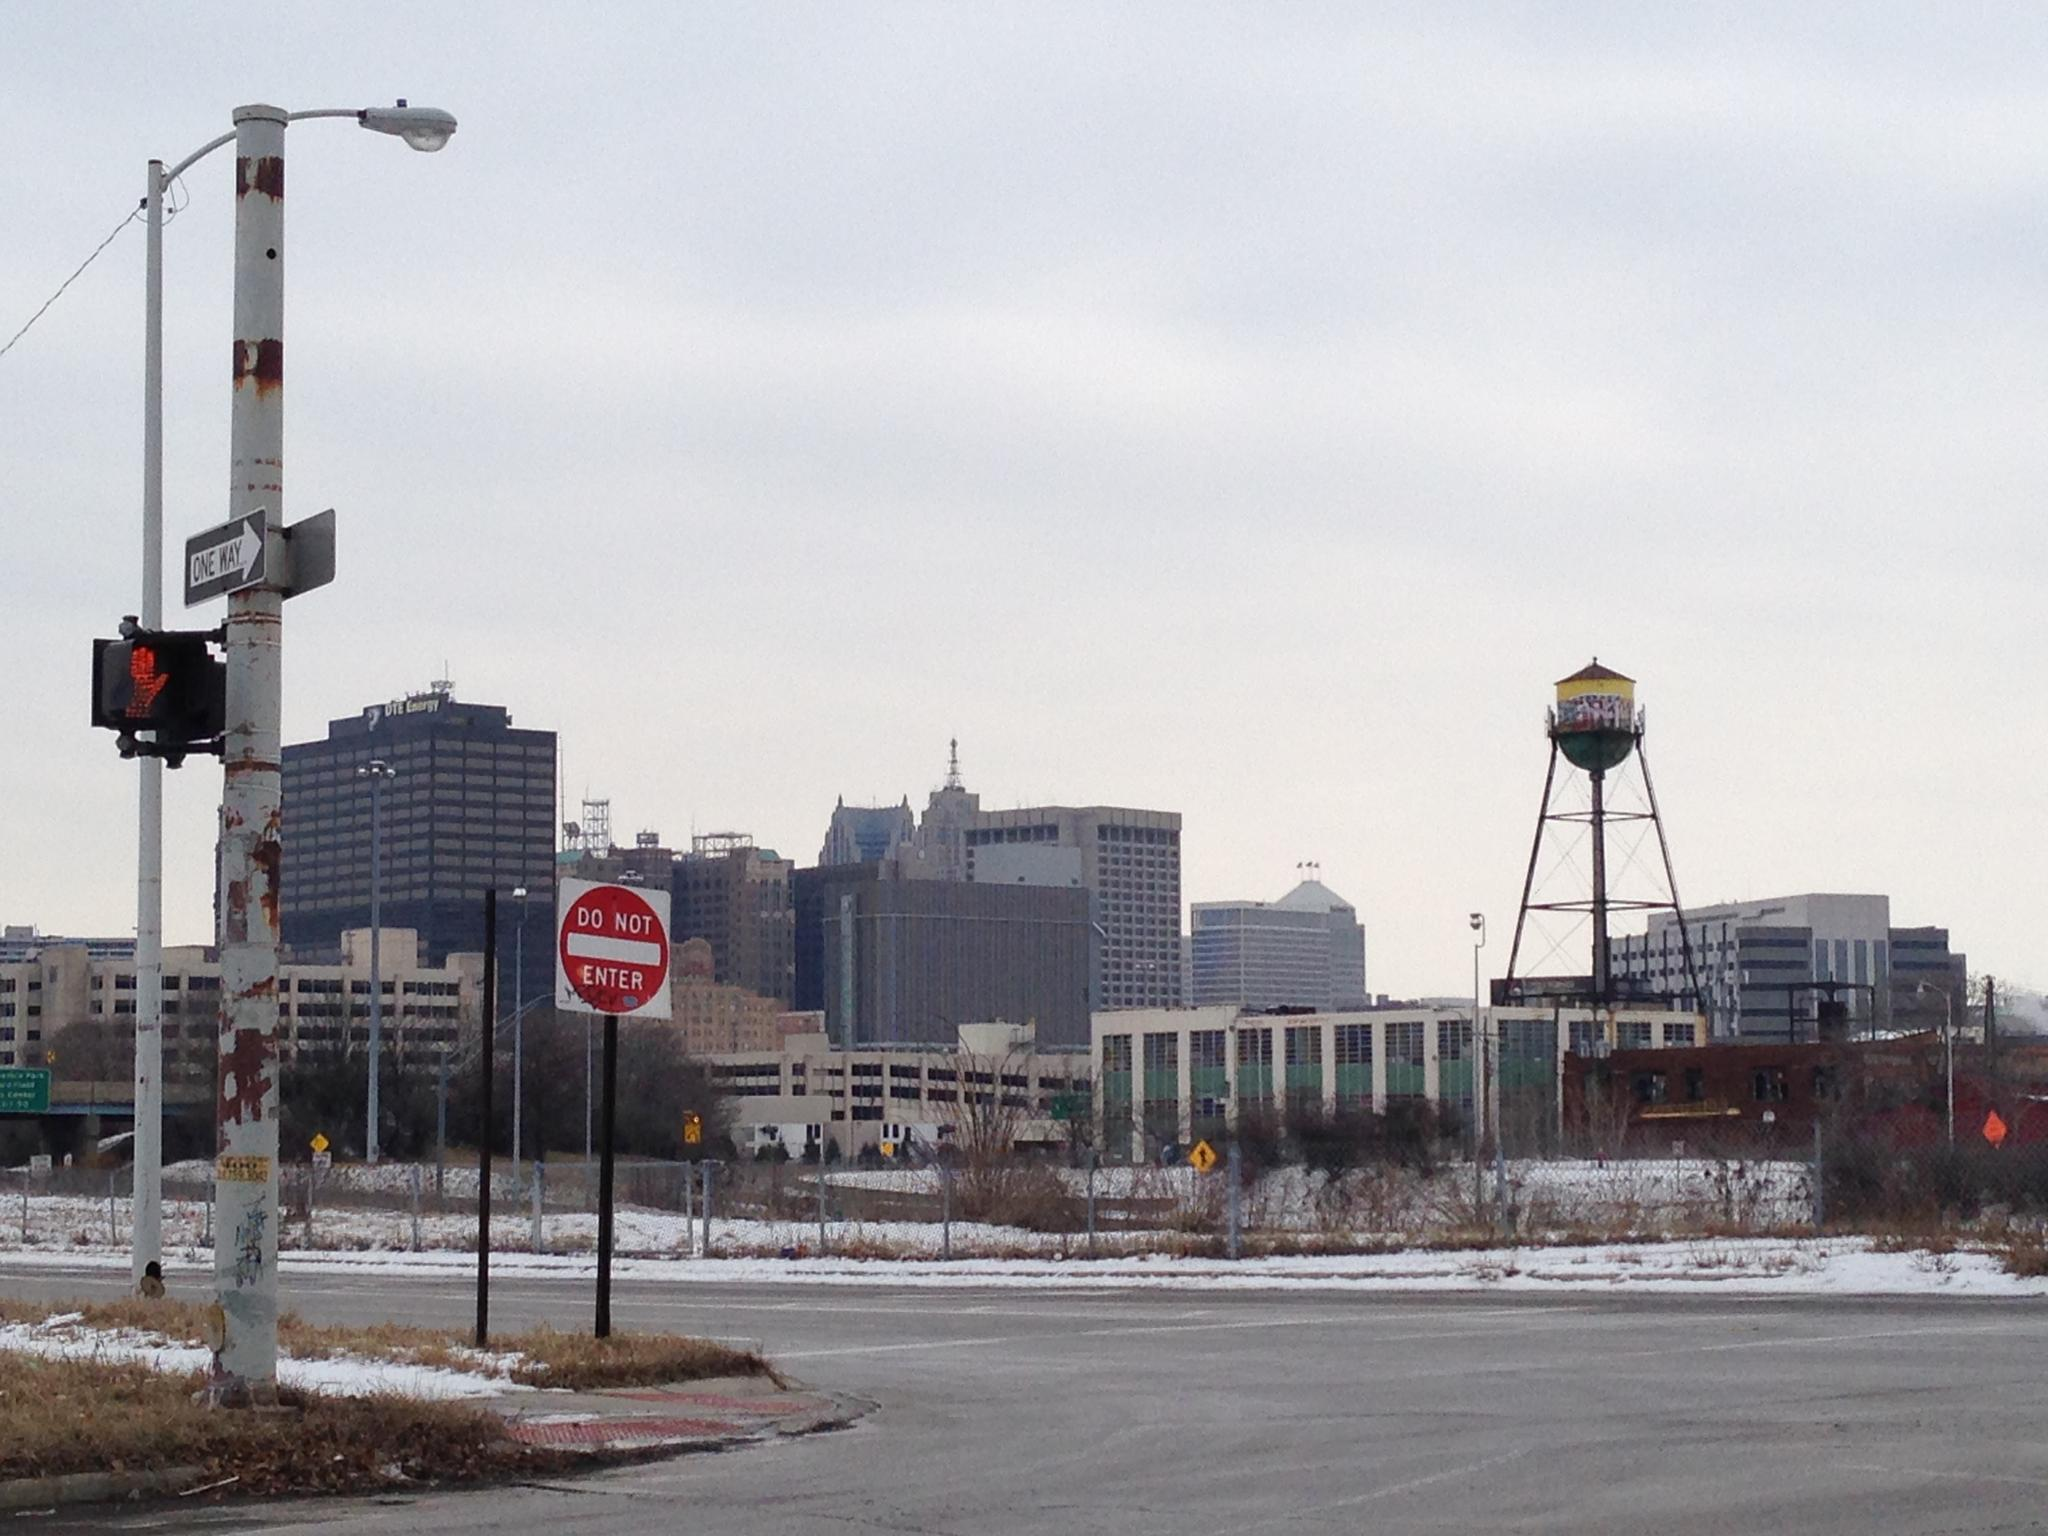 Photo in Street Photography #detroit #detroit skyline #water tower #abandoned buildings #stop sign #street sign #cross walk #street light #graffiti #tagging #mural #snow #winter #do not enter #warning #caution #dte energy #penobscot building #penobscot orb #one detroit center #skyscraper #skyscrapers #david stott building #downtown detroit #2141 photography